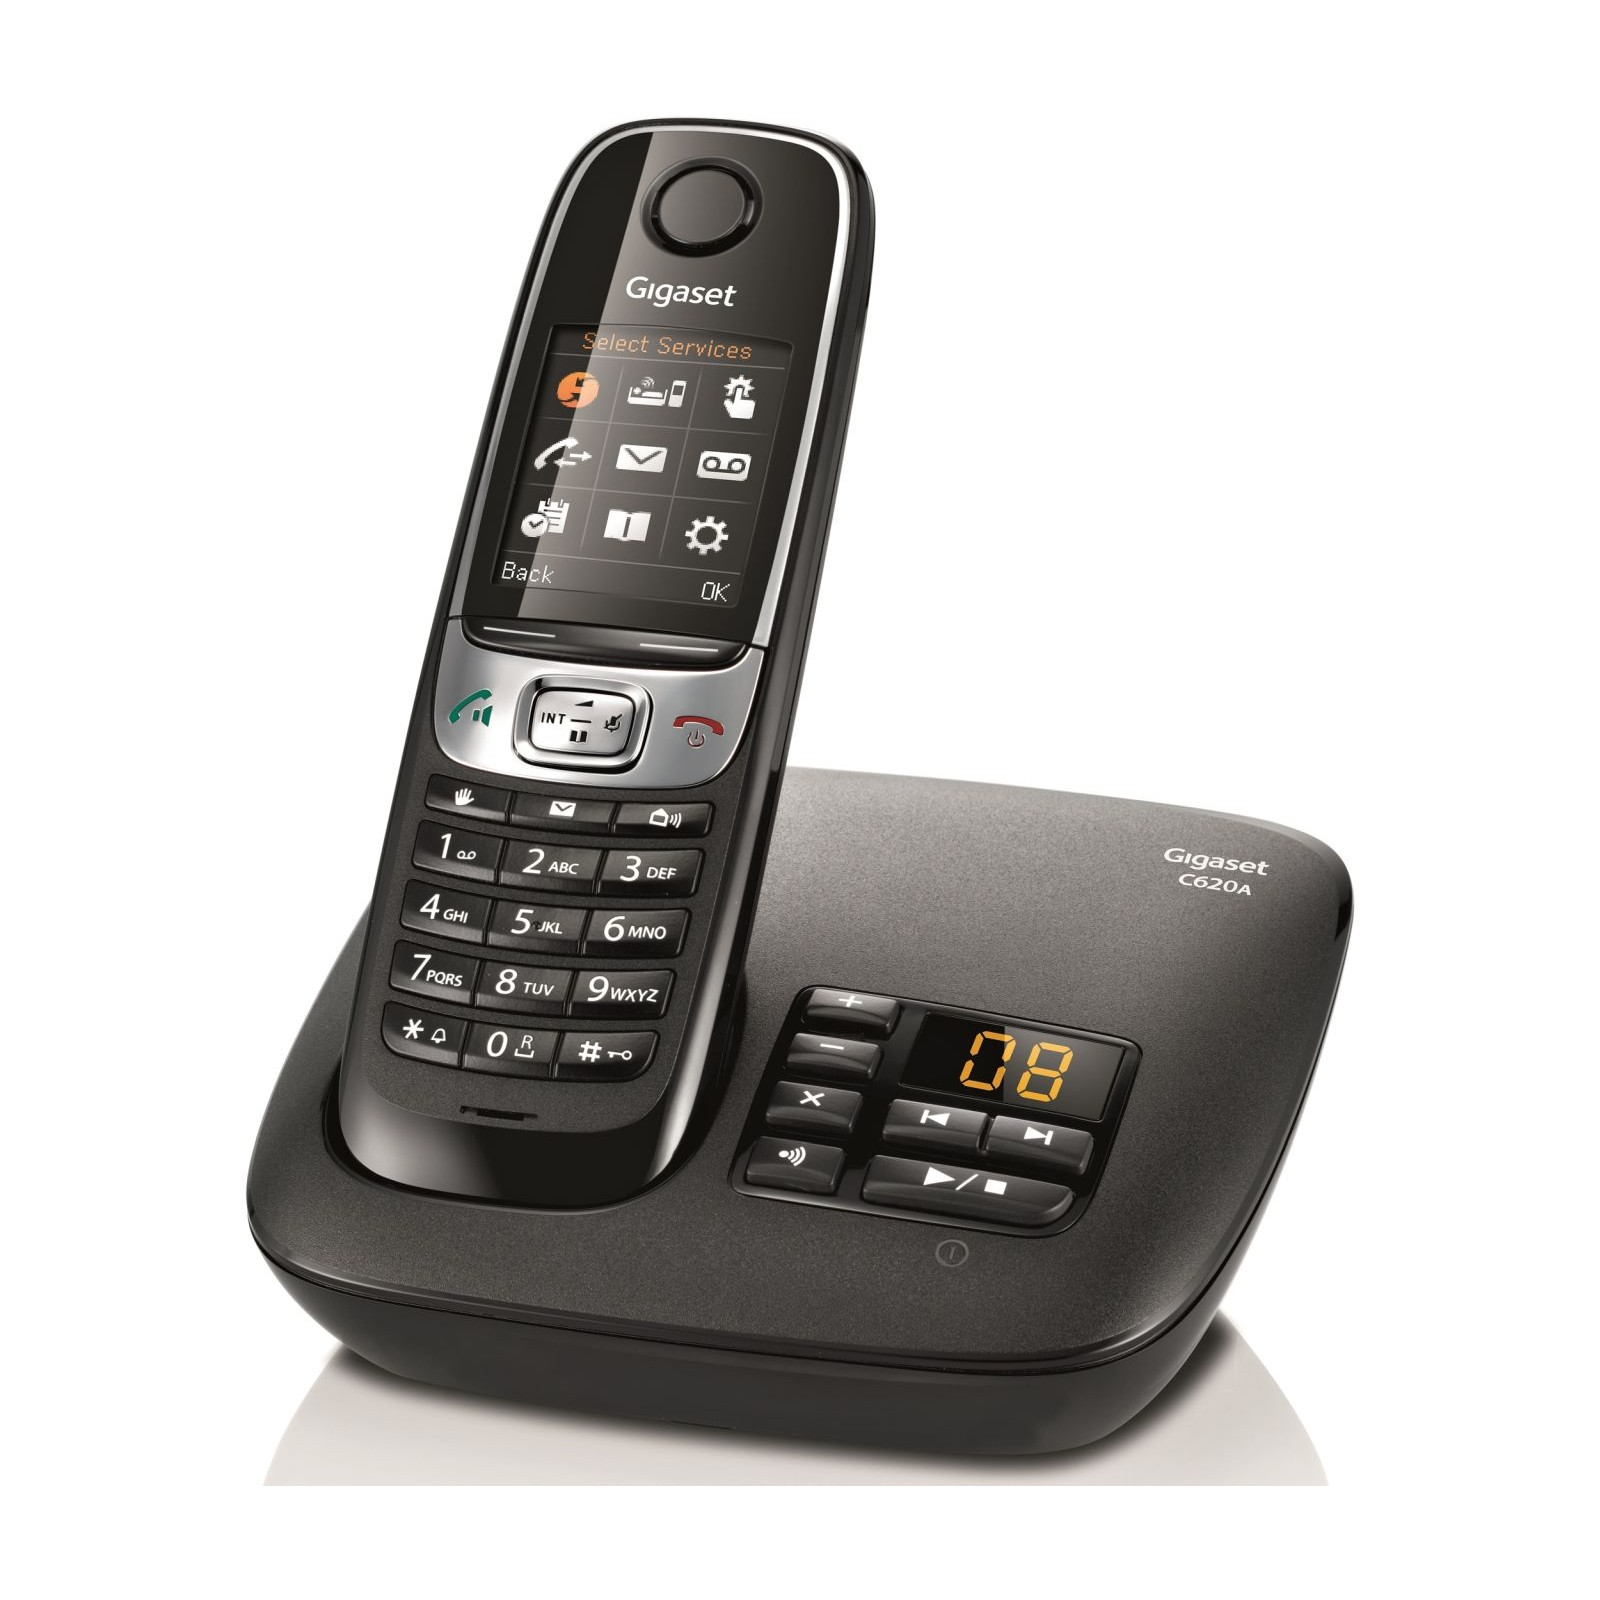 siemens gigaset phones usa info smartphone. Black Bedroom Furniture Sets. Home Design Ideas